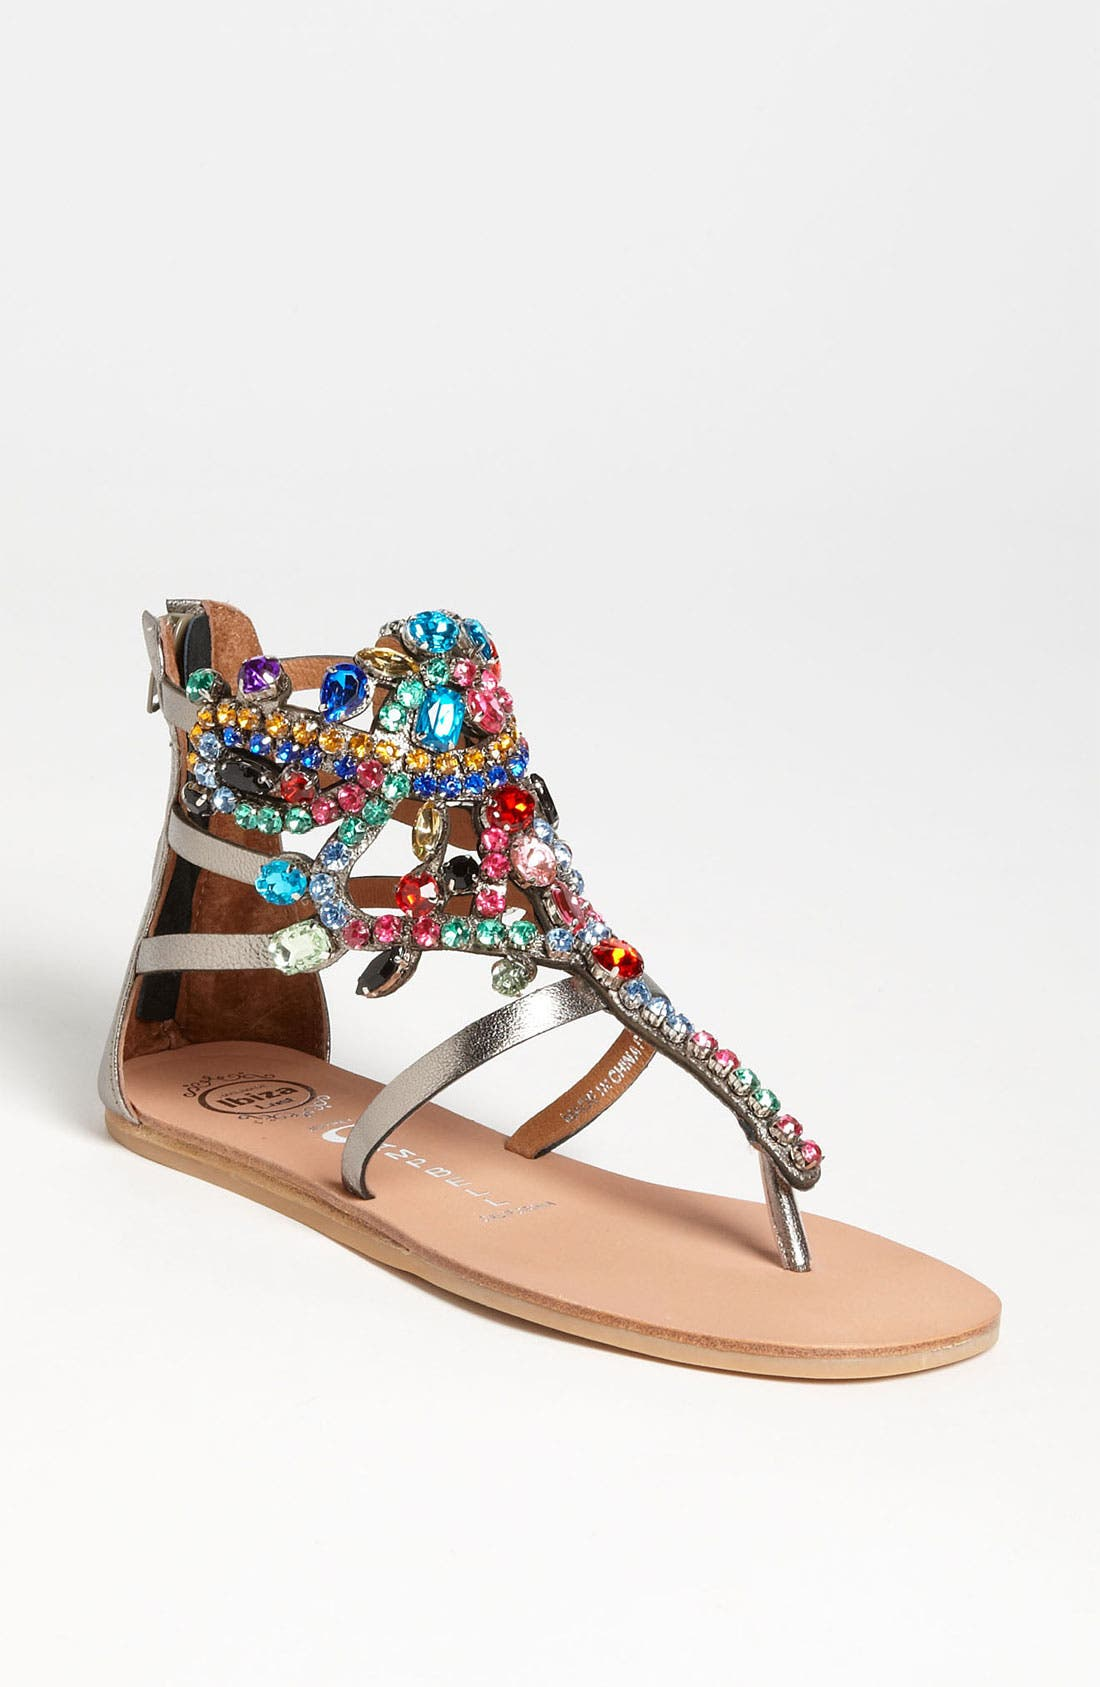 Alternate Image 1 Selected - Jeffrey Campbell 'Prizzy' Sandal